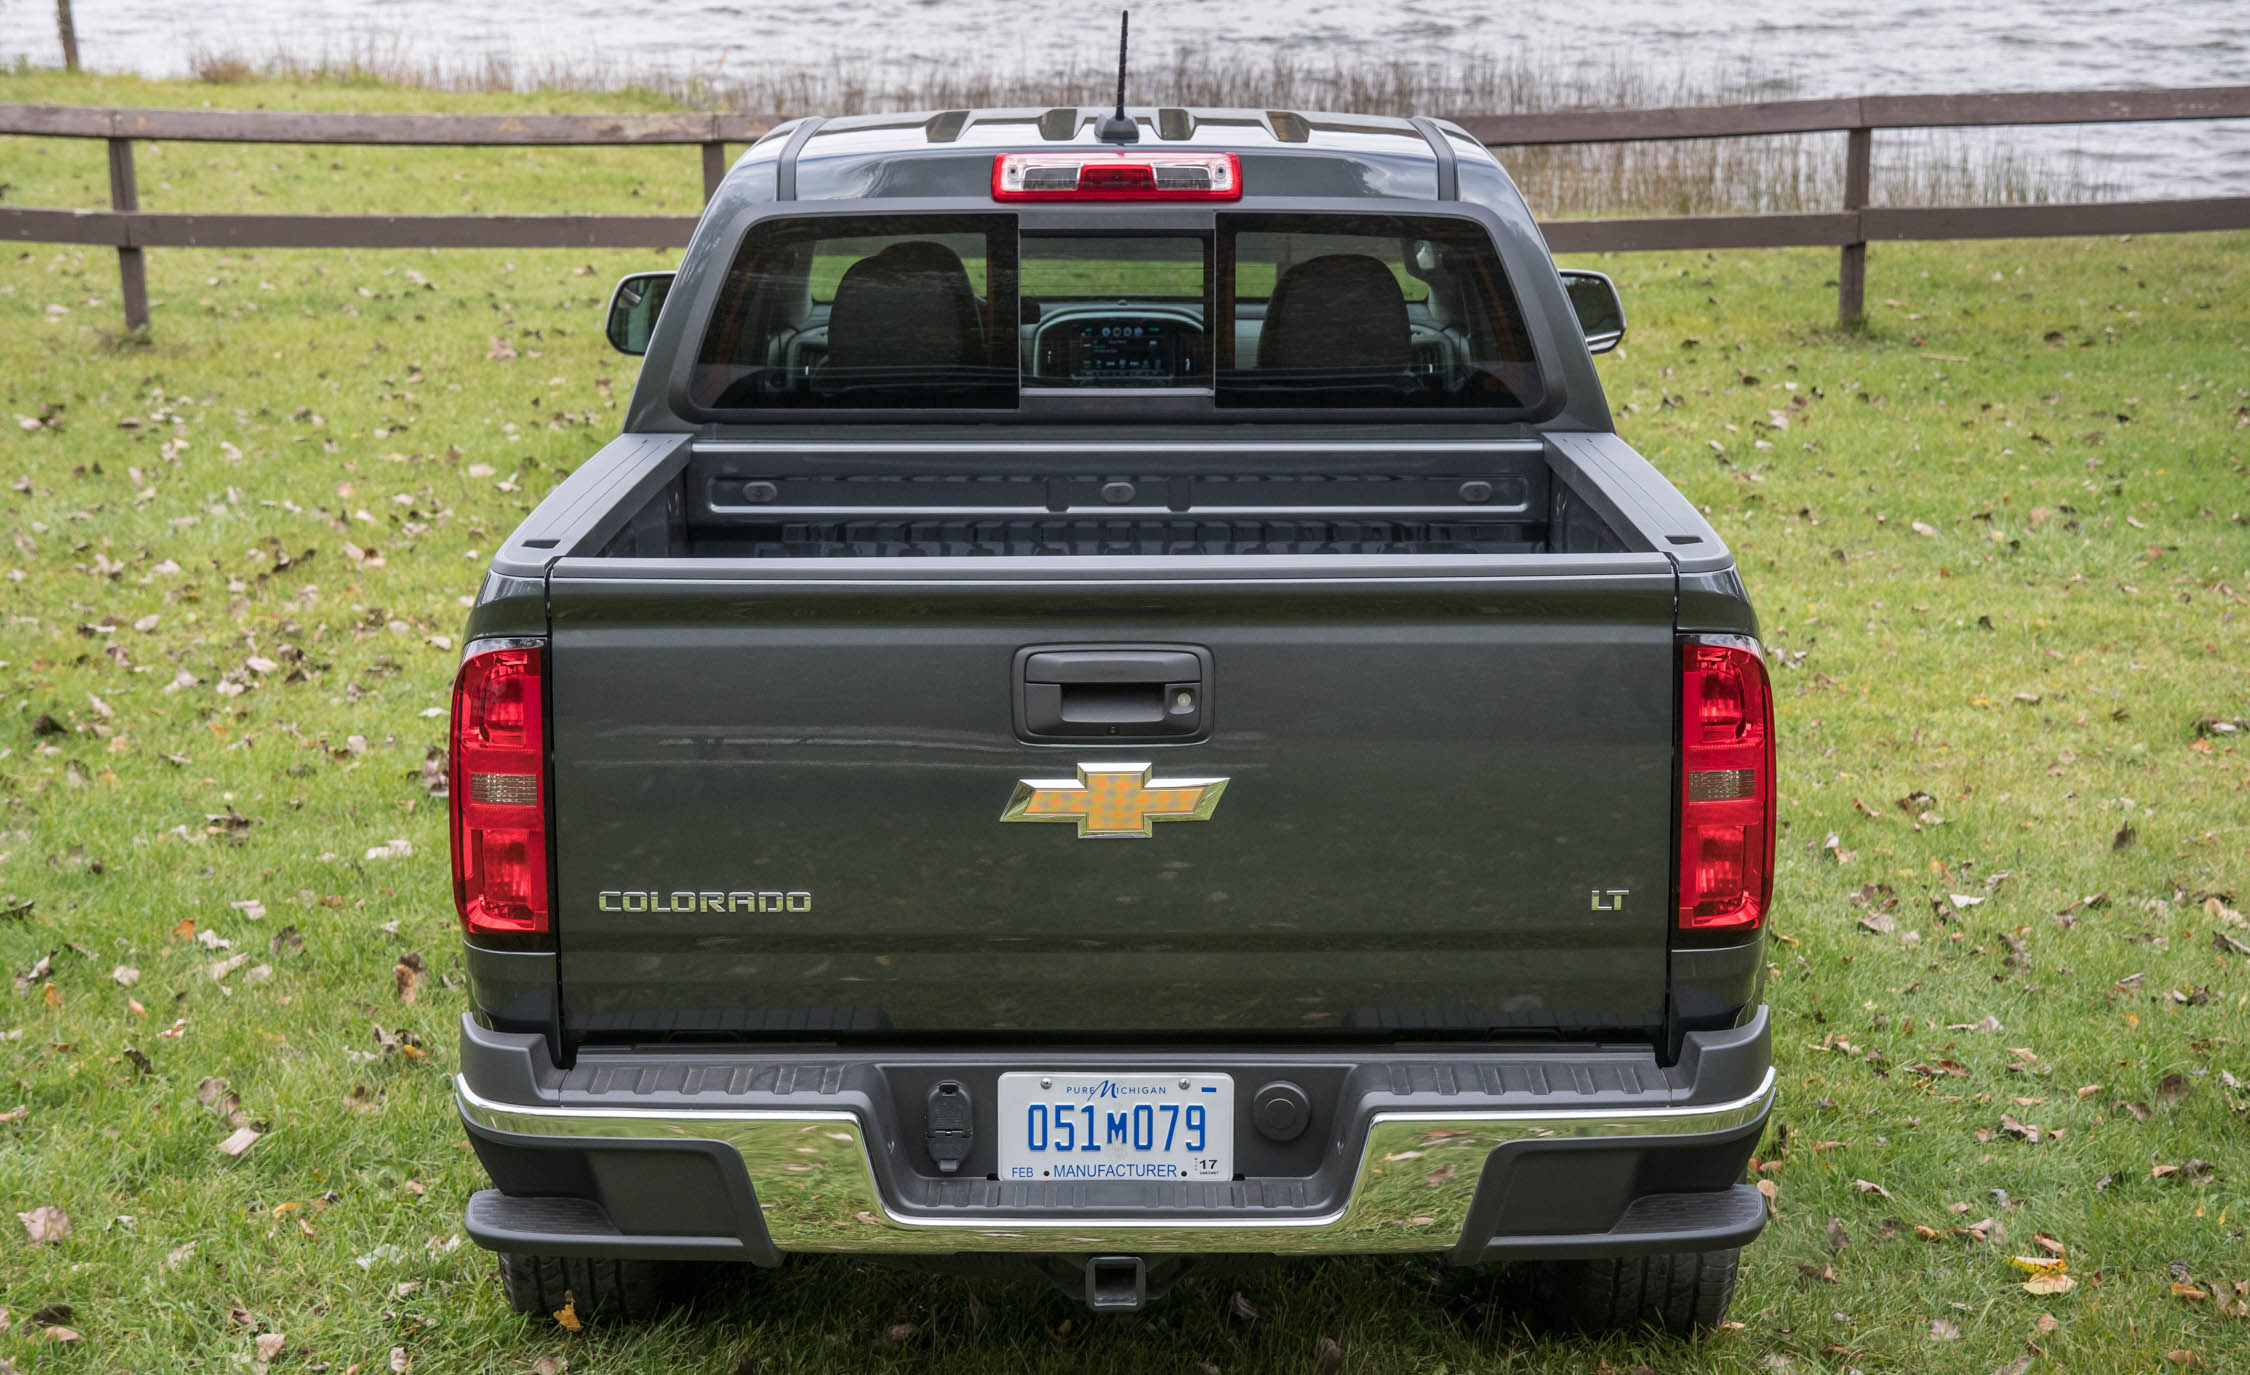 2017 Chevrolet Colorado LT Exterior Rear End (View 23 of 41)